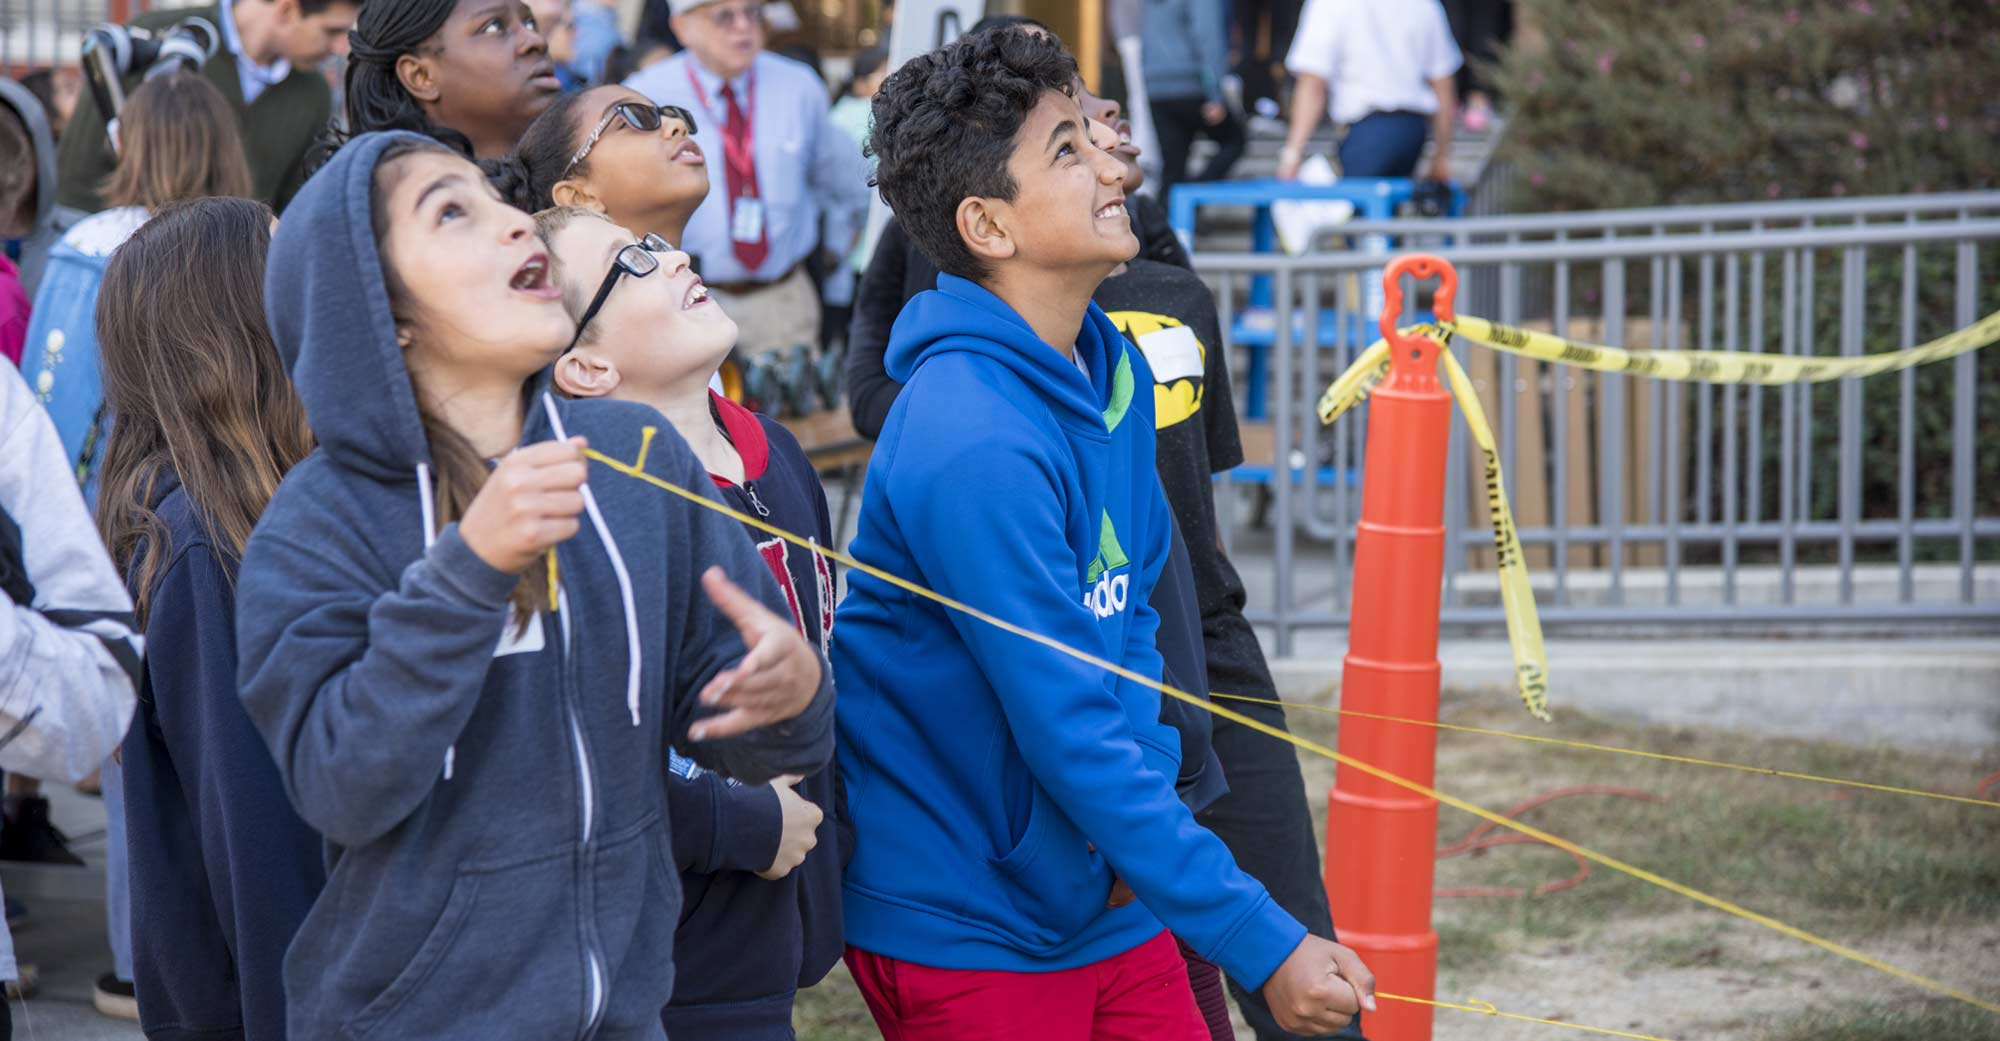 Discover NPS Day 2018 Story Image - Kids launching bottle rockets